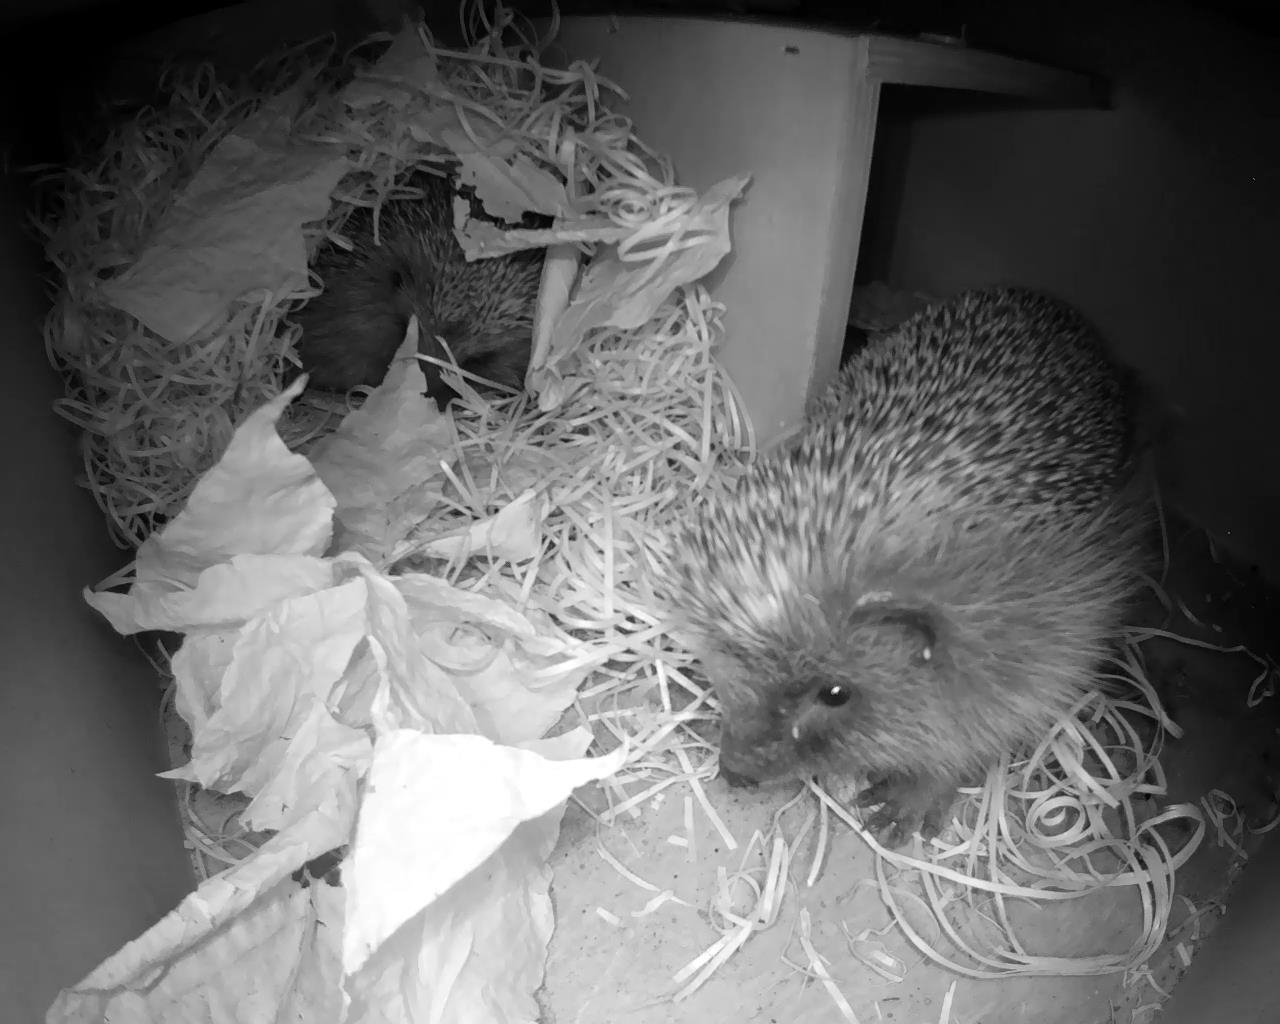 Hedgehog Box 2016-04-28 21-54-31.297